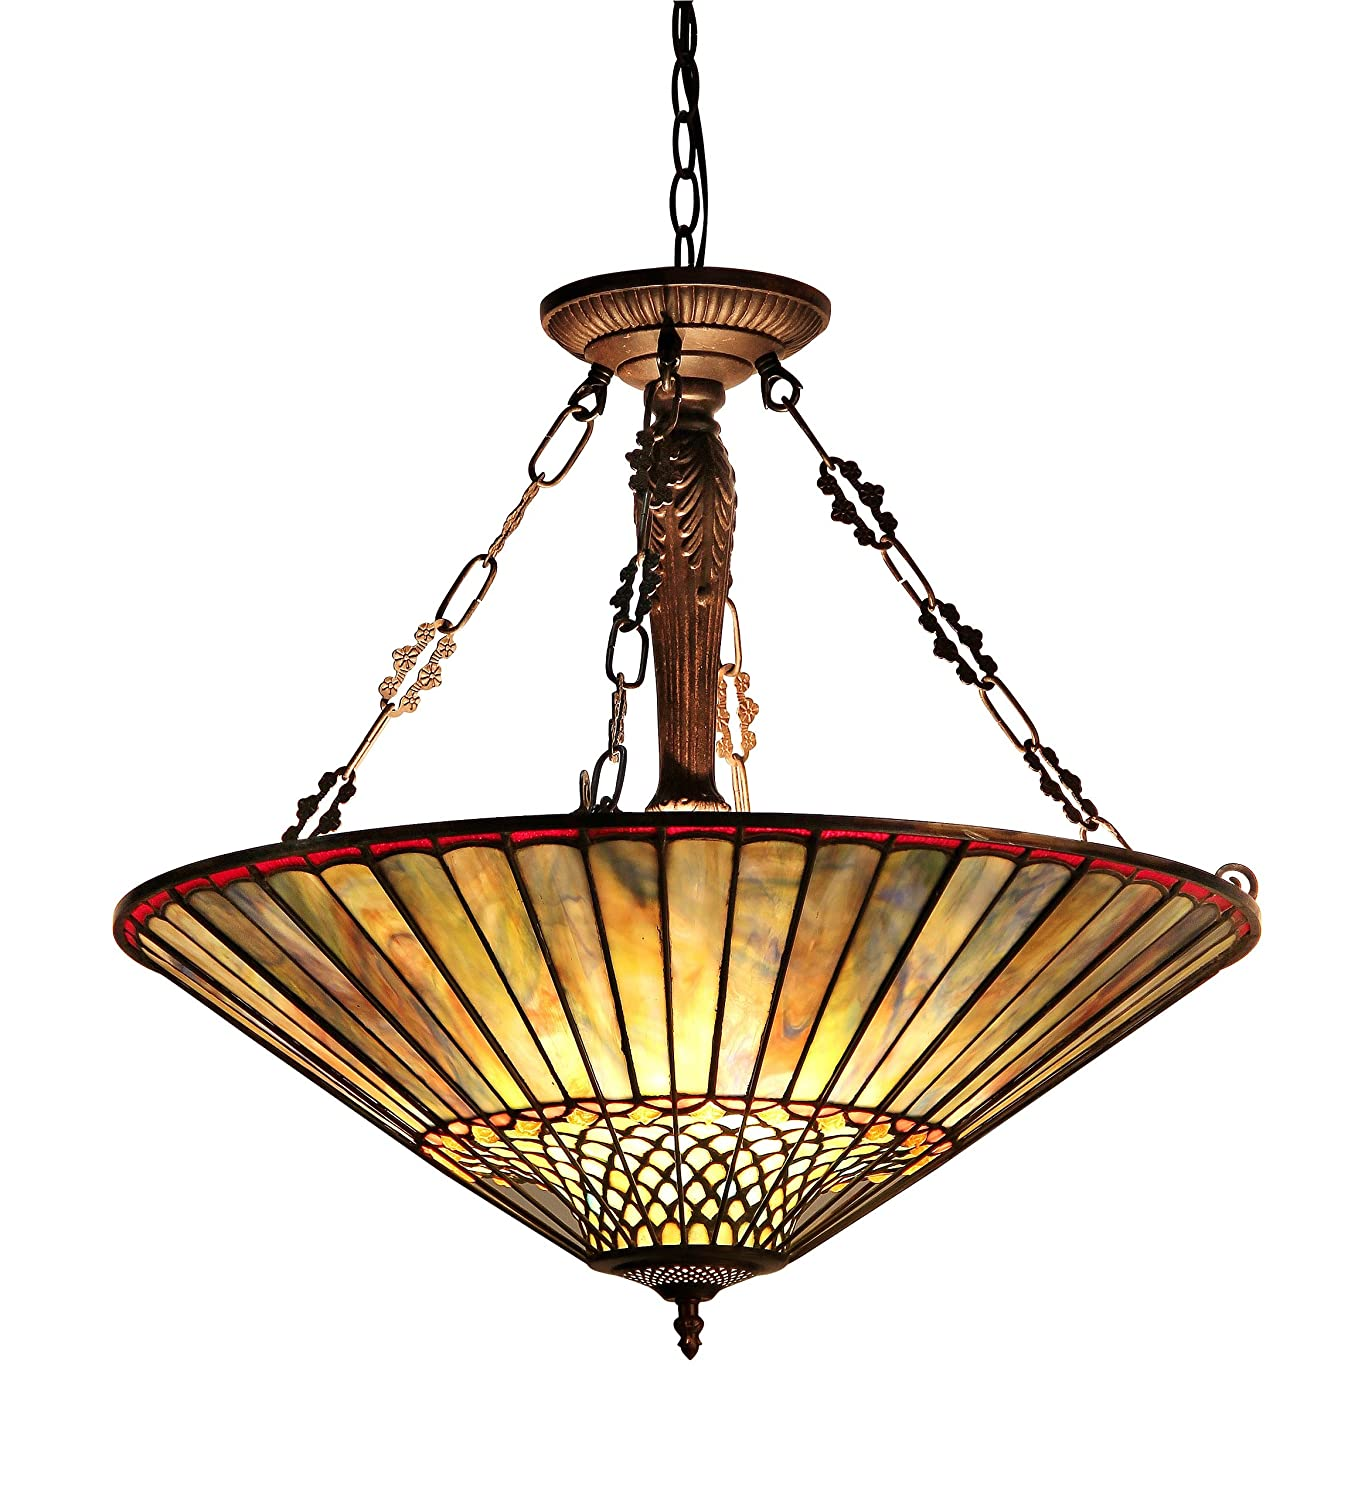 com amazon fixtures rose hanging southern lamp belle style tiffany dp pendant ceiling